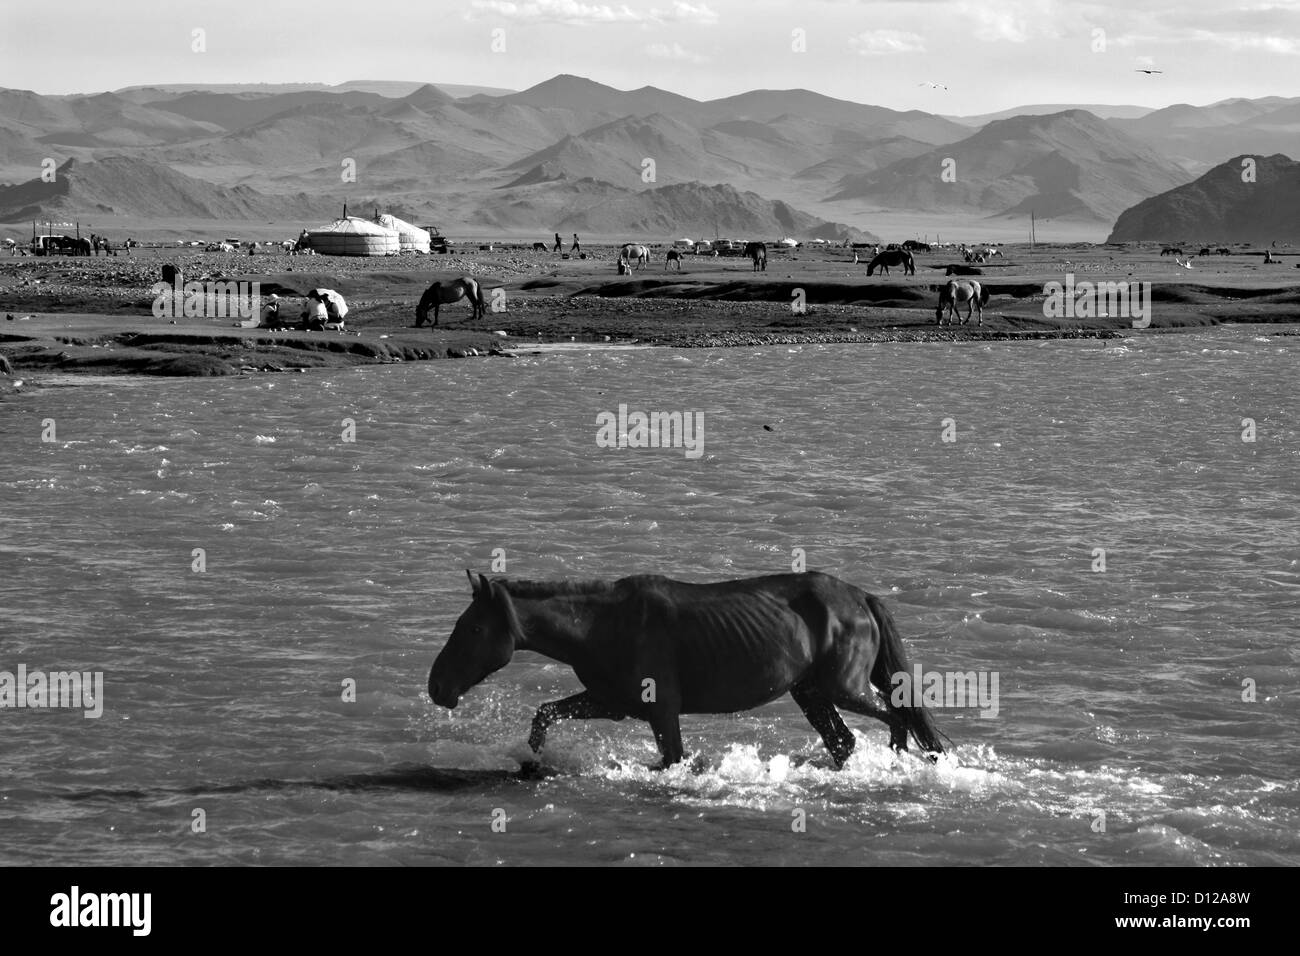 Horses on the outskirts of Khovd - Stock Image